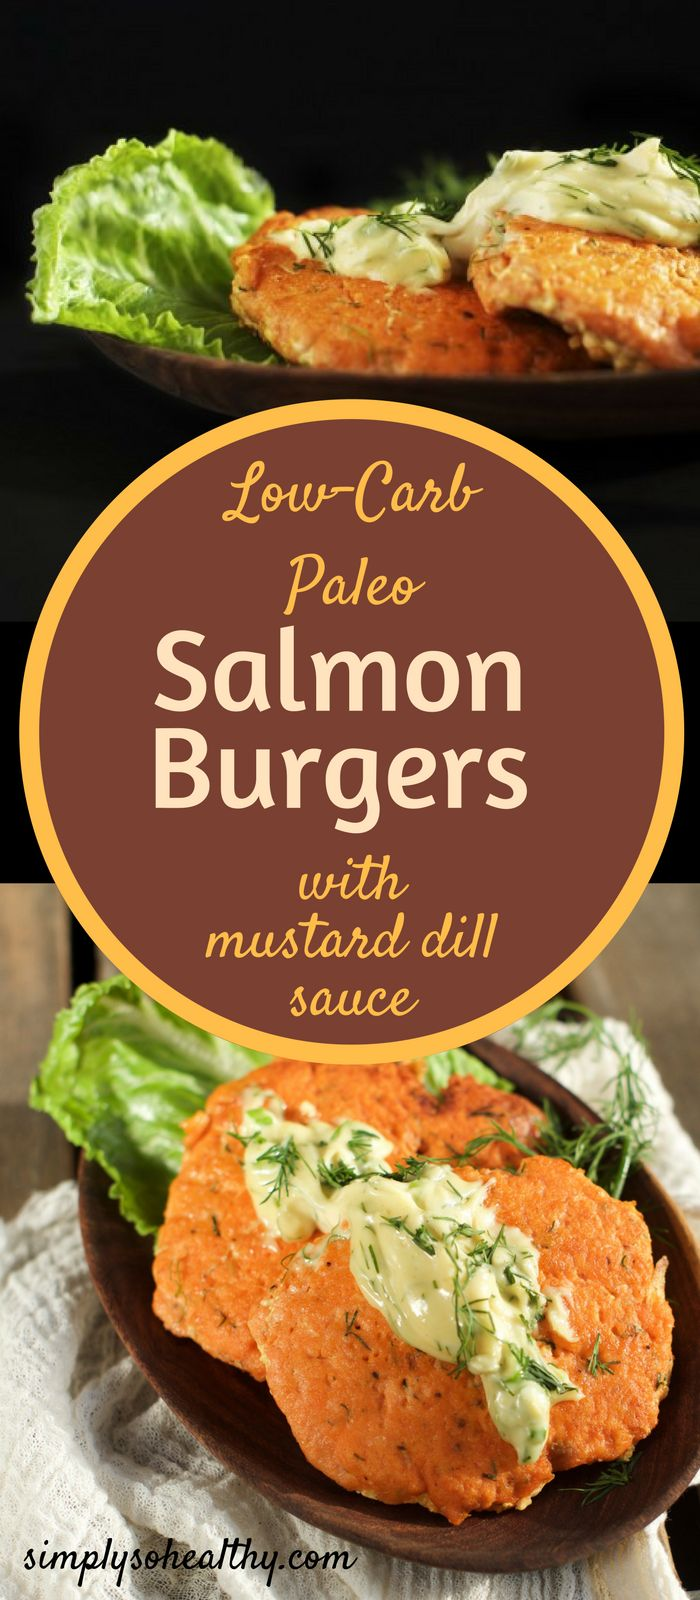 These Salmon Burgers With Mustard Dill Sauce are low-carb, gluten-free and Paleo.  They come together quickly and easily with the help of a food processor. The tender flakes of salmon with hints of scallion and dill are served with a creamy sauce with tones of mustard and dill.  They make the perfect lunch, dinner or could be made in miniature for an appetizer.